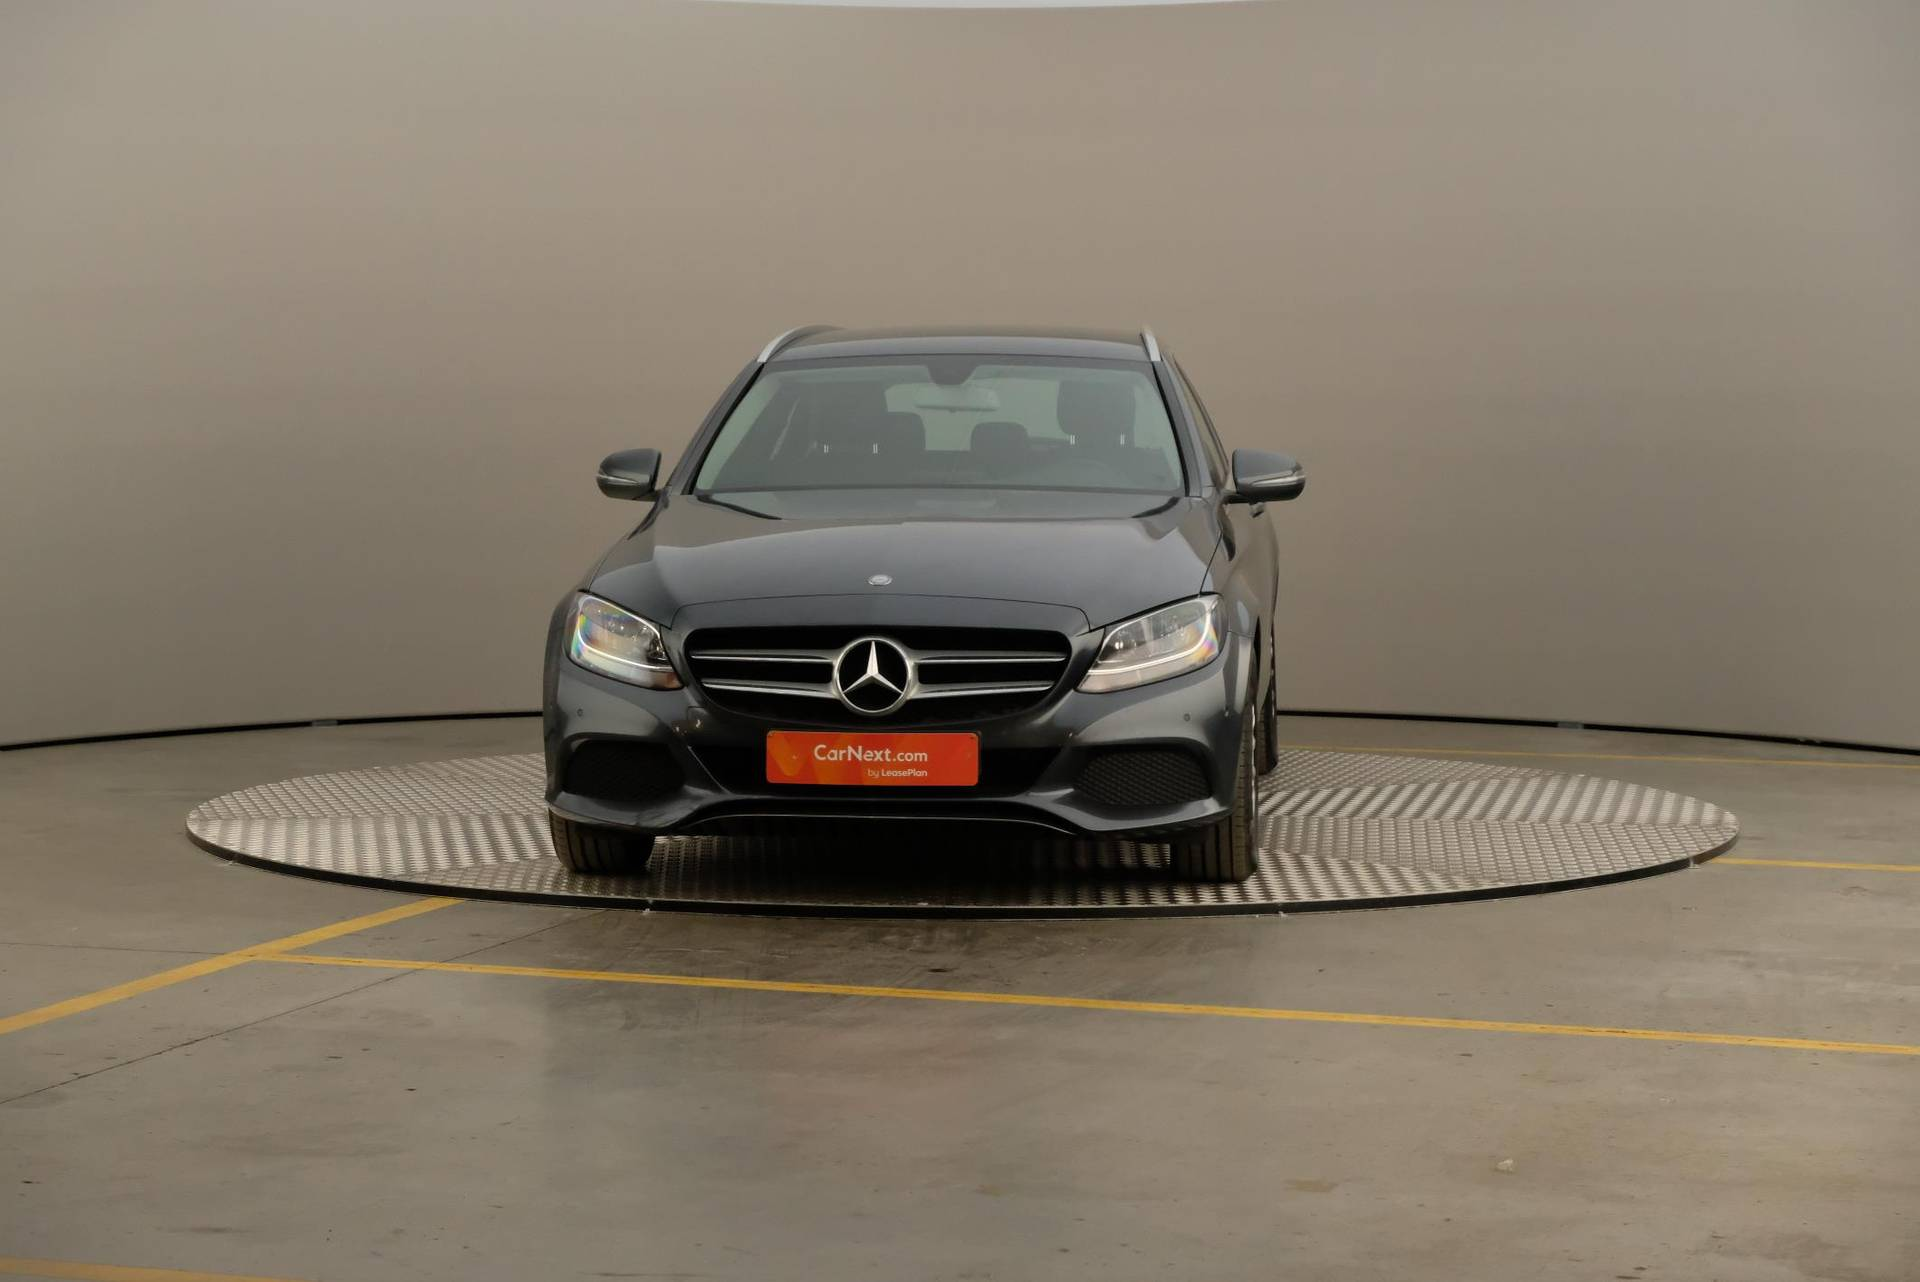 Mercedes-Benz C-Klasse 180 d PACK AVANTGARDE PACK EASY GPS PDC TREKHAAK EURO 6.., 360-image32